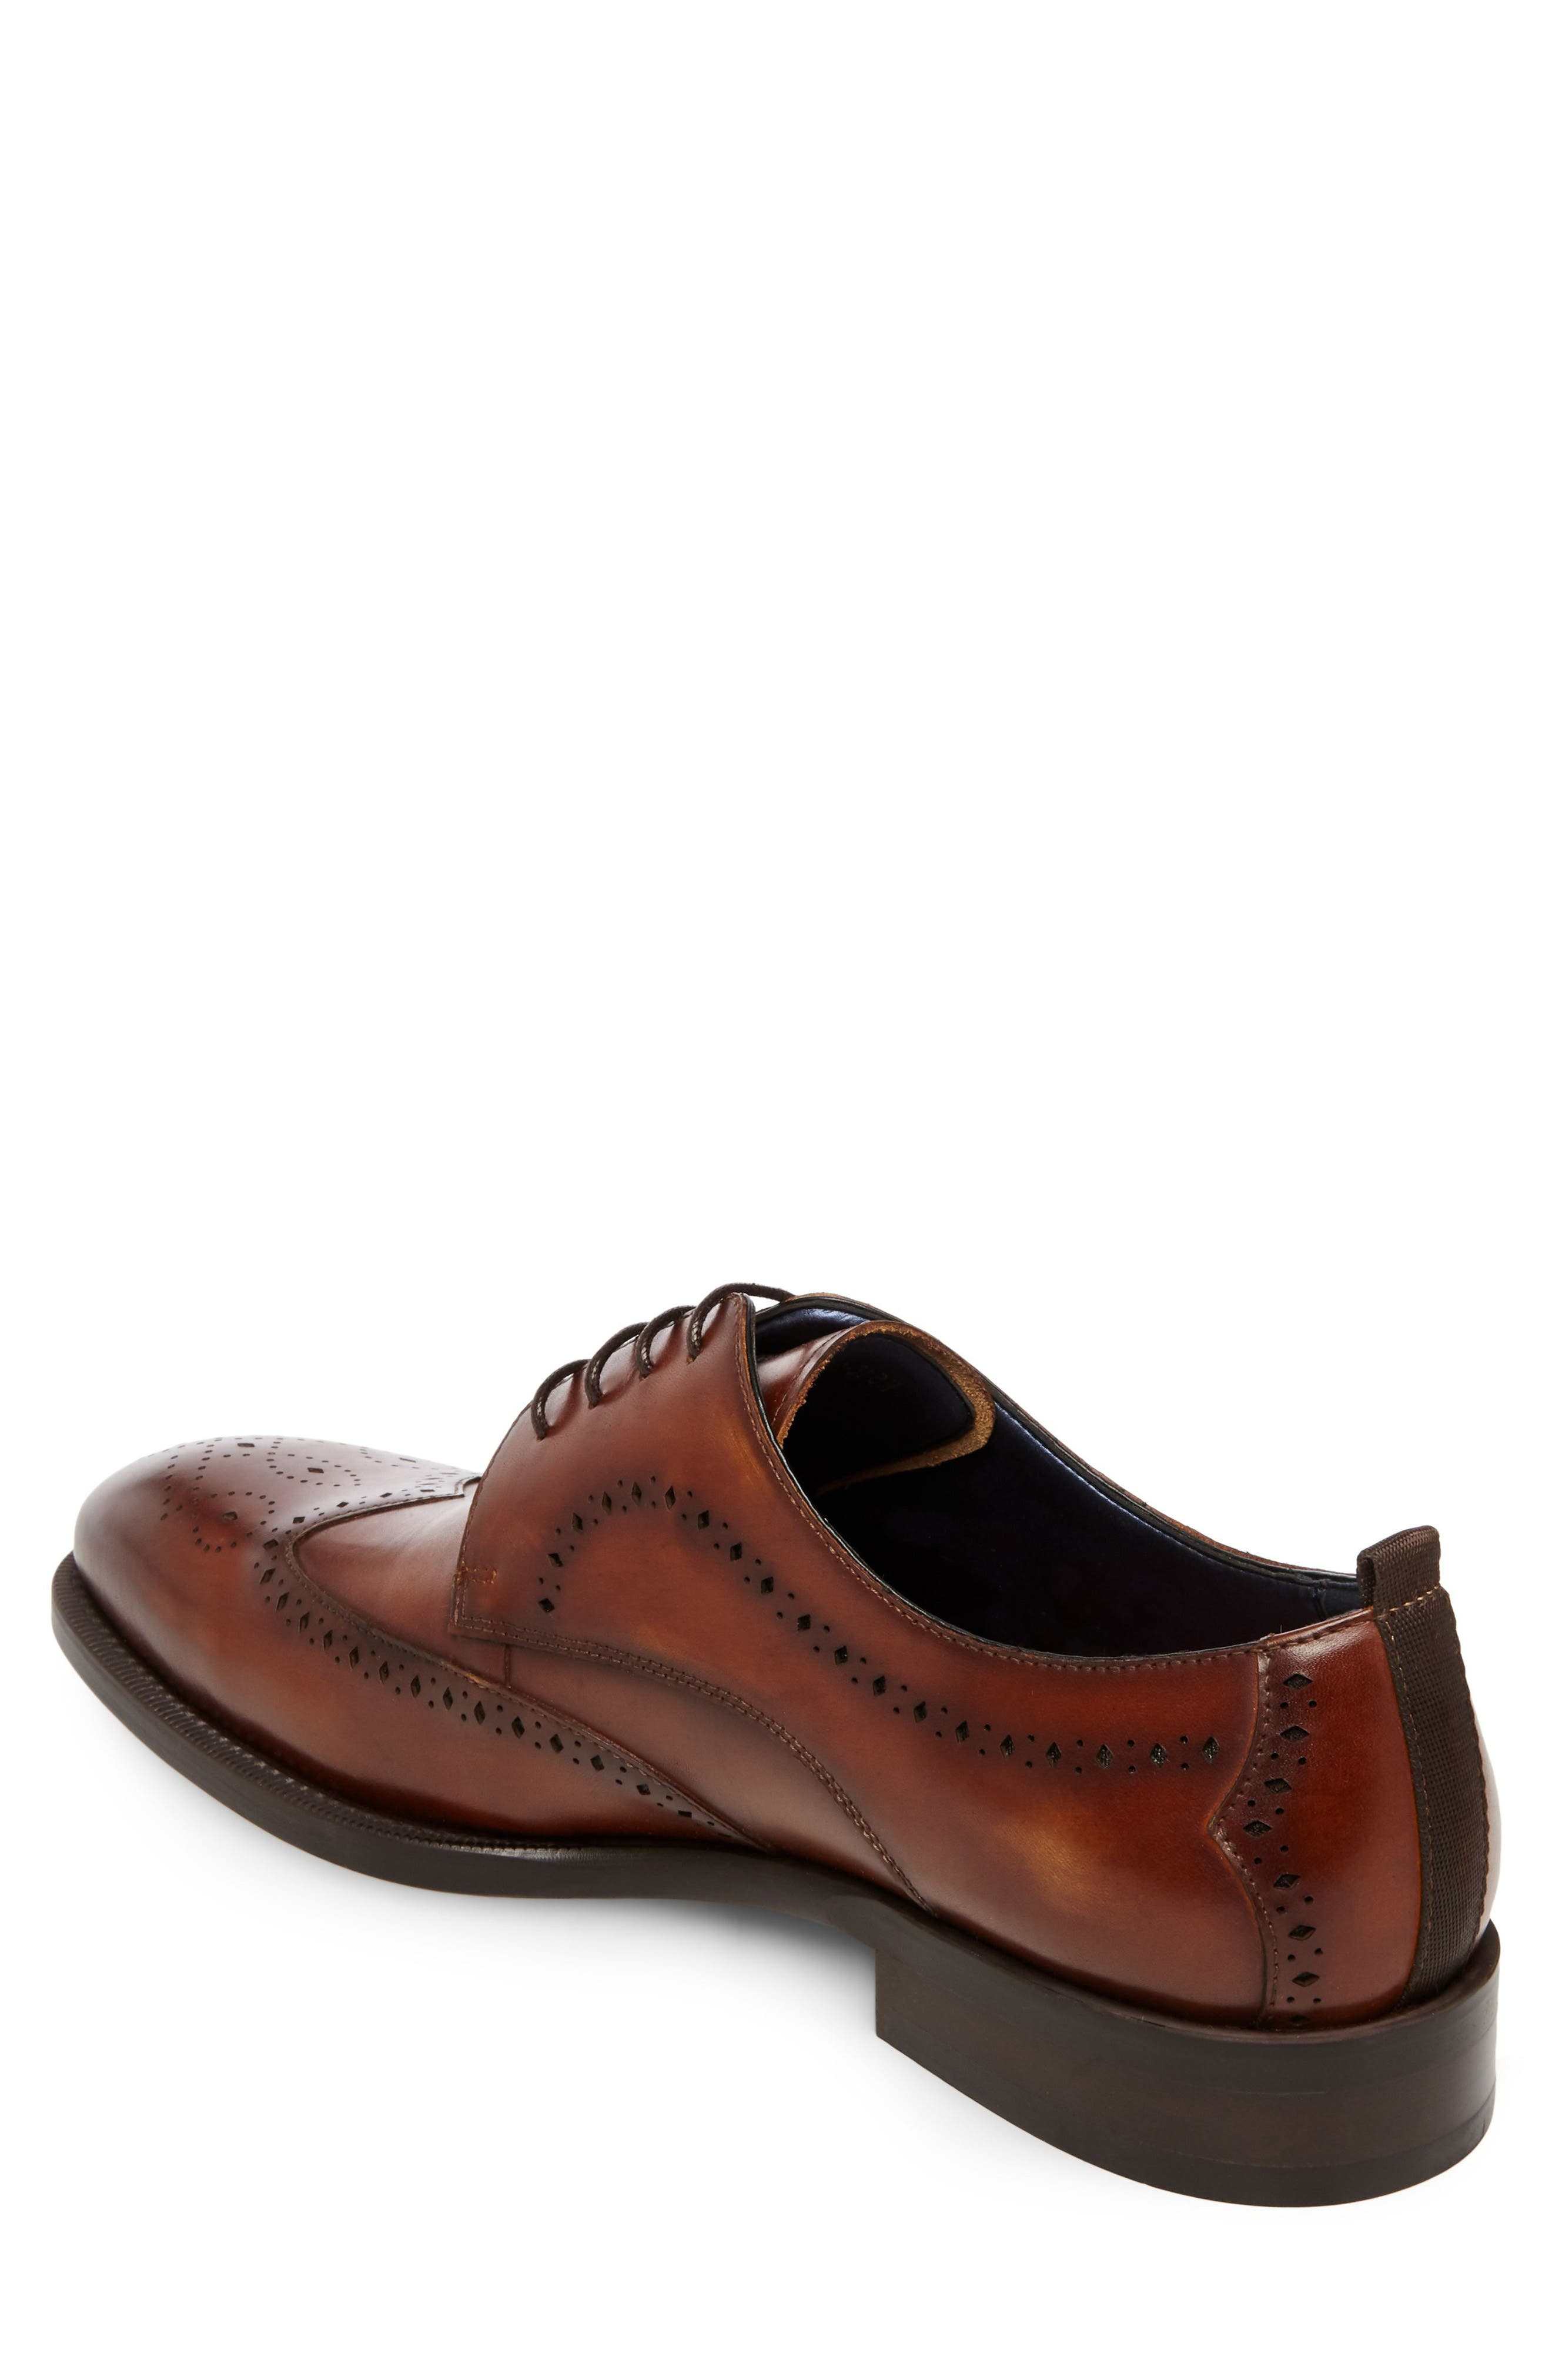 Candyd Wingtip,                             Alternate thumbnail 2, color,                             Brown Leather